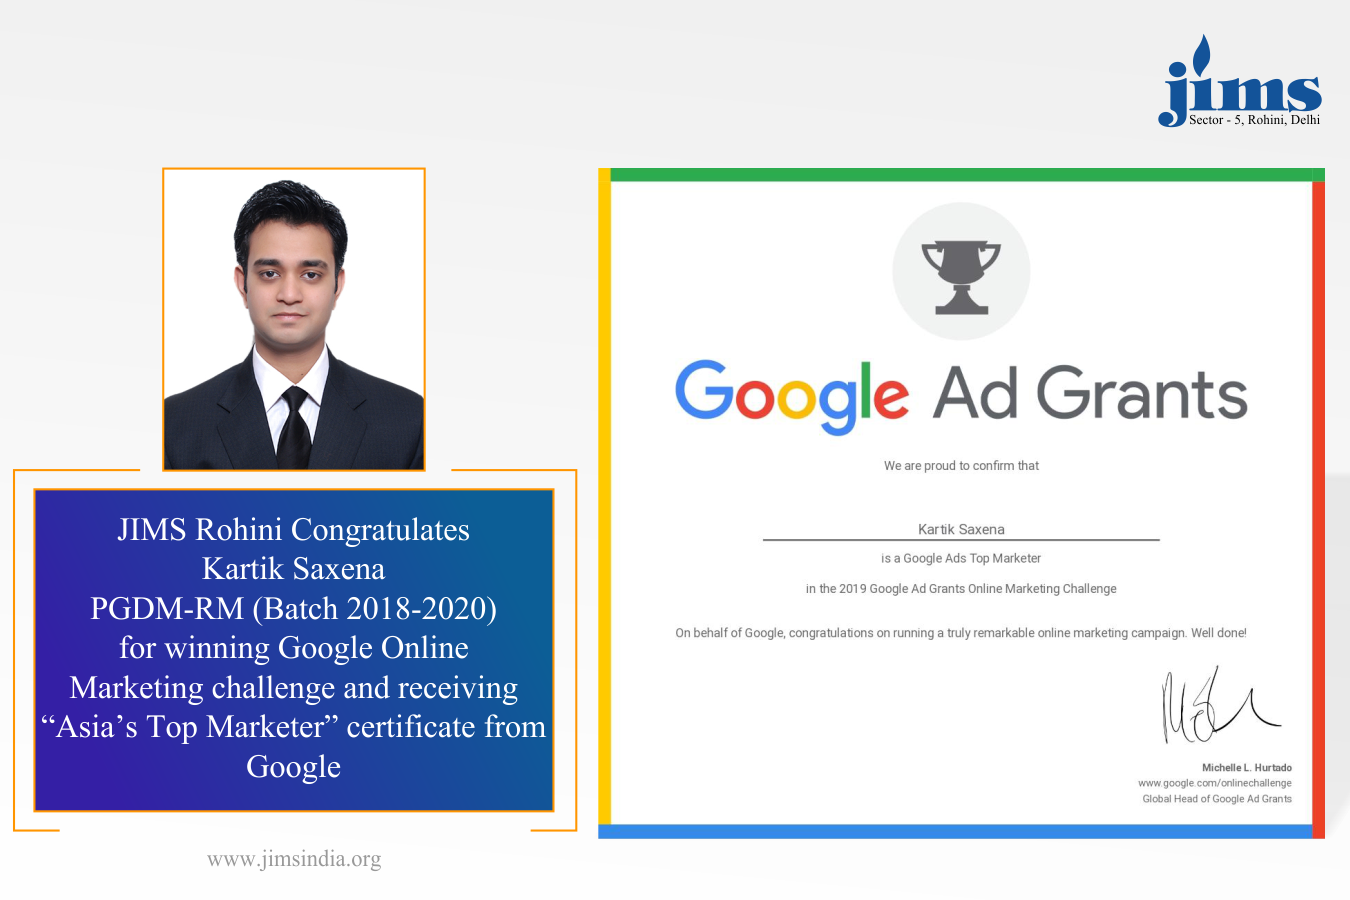 JIMS Rohini Congratulates Kartik Saxena, student PGDM-RM for winning Google Online Marketing challenge